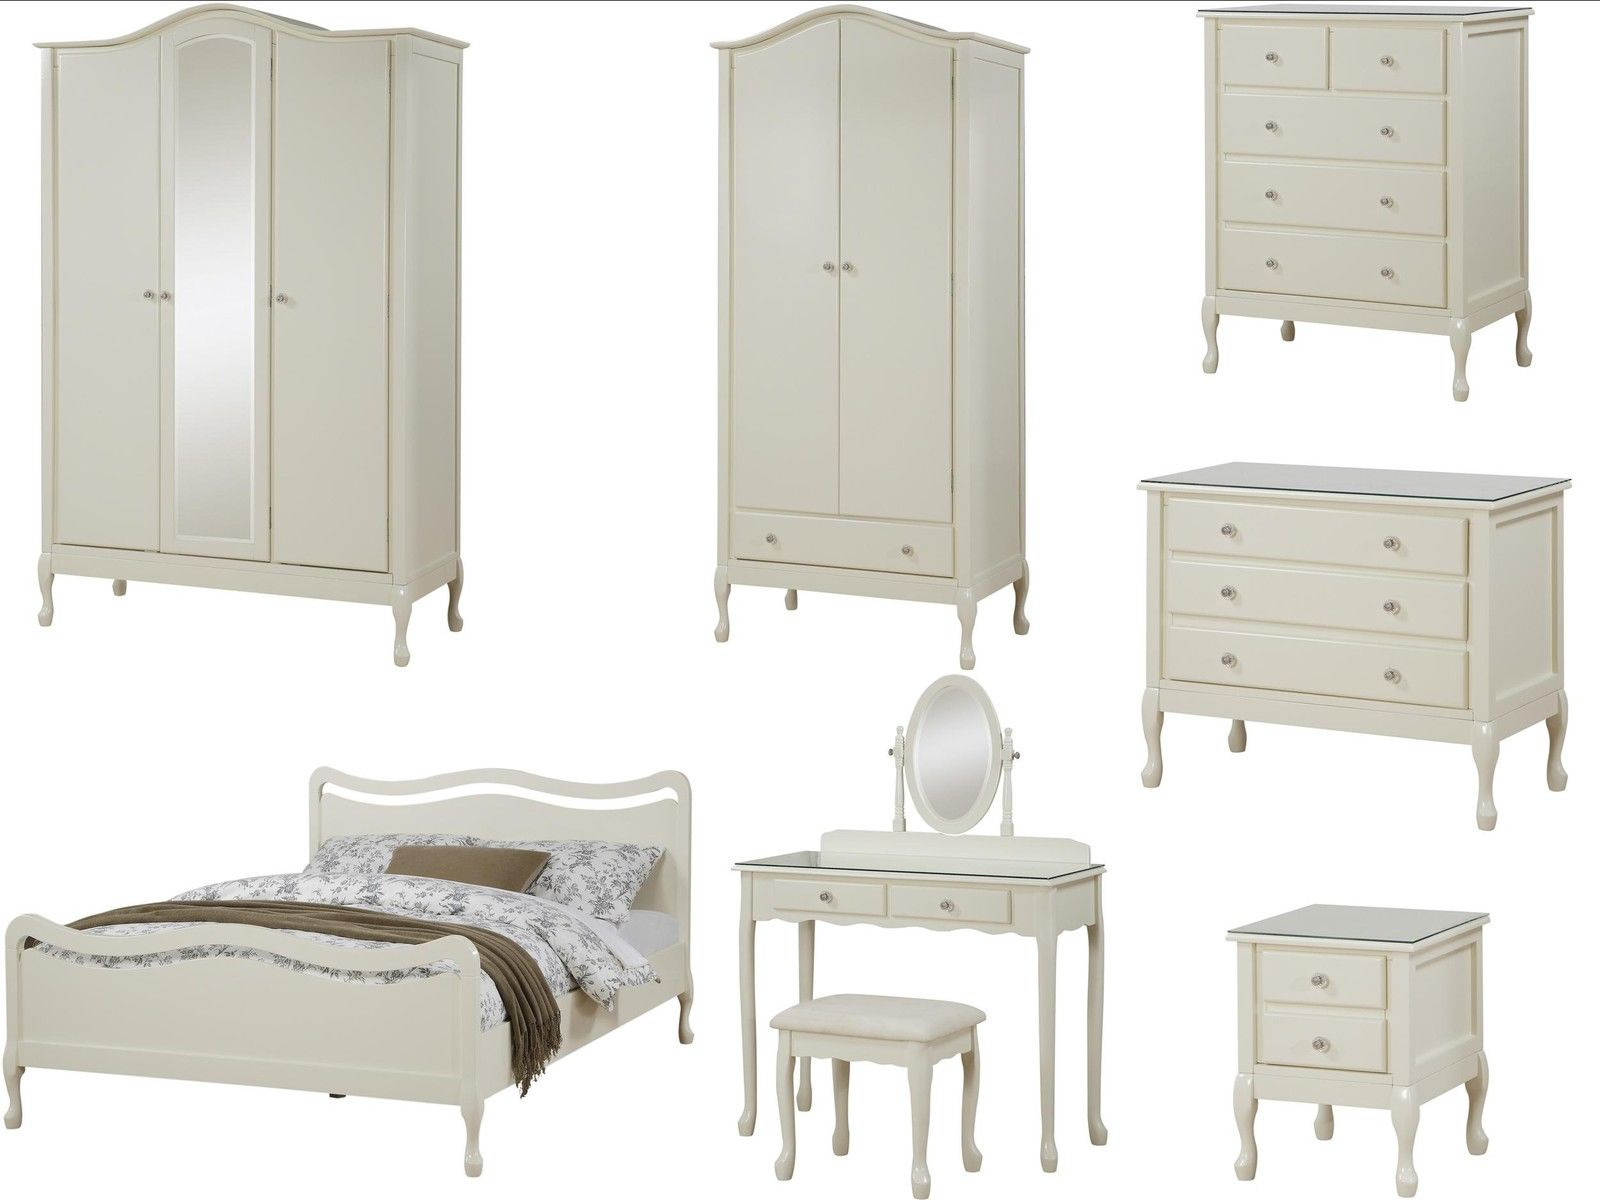 New Shabby Chic Ivory Bedroom Furniture Wardrobe Drawers Bed Dressing Ta